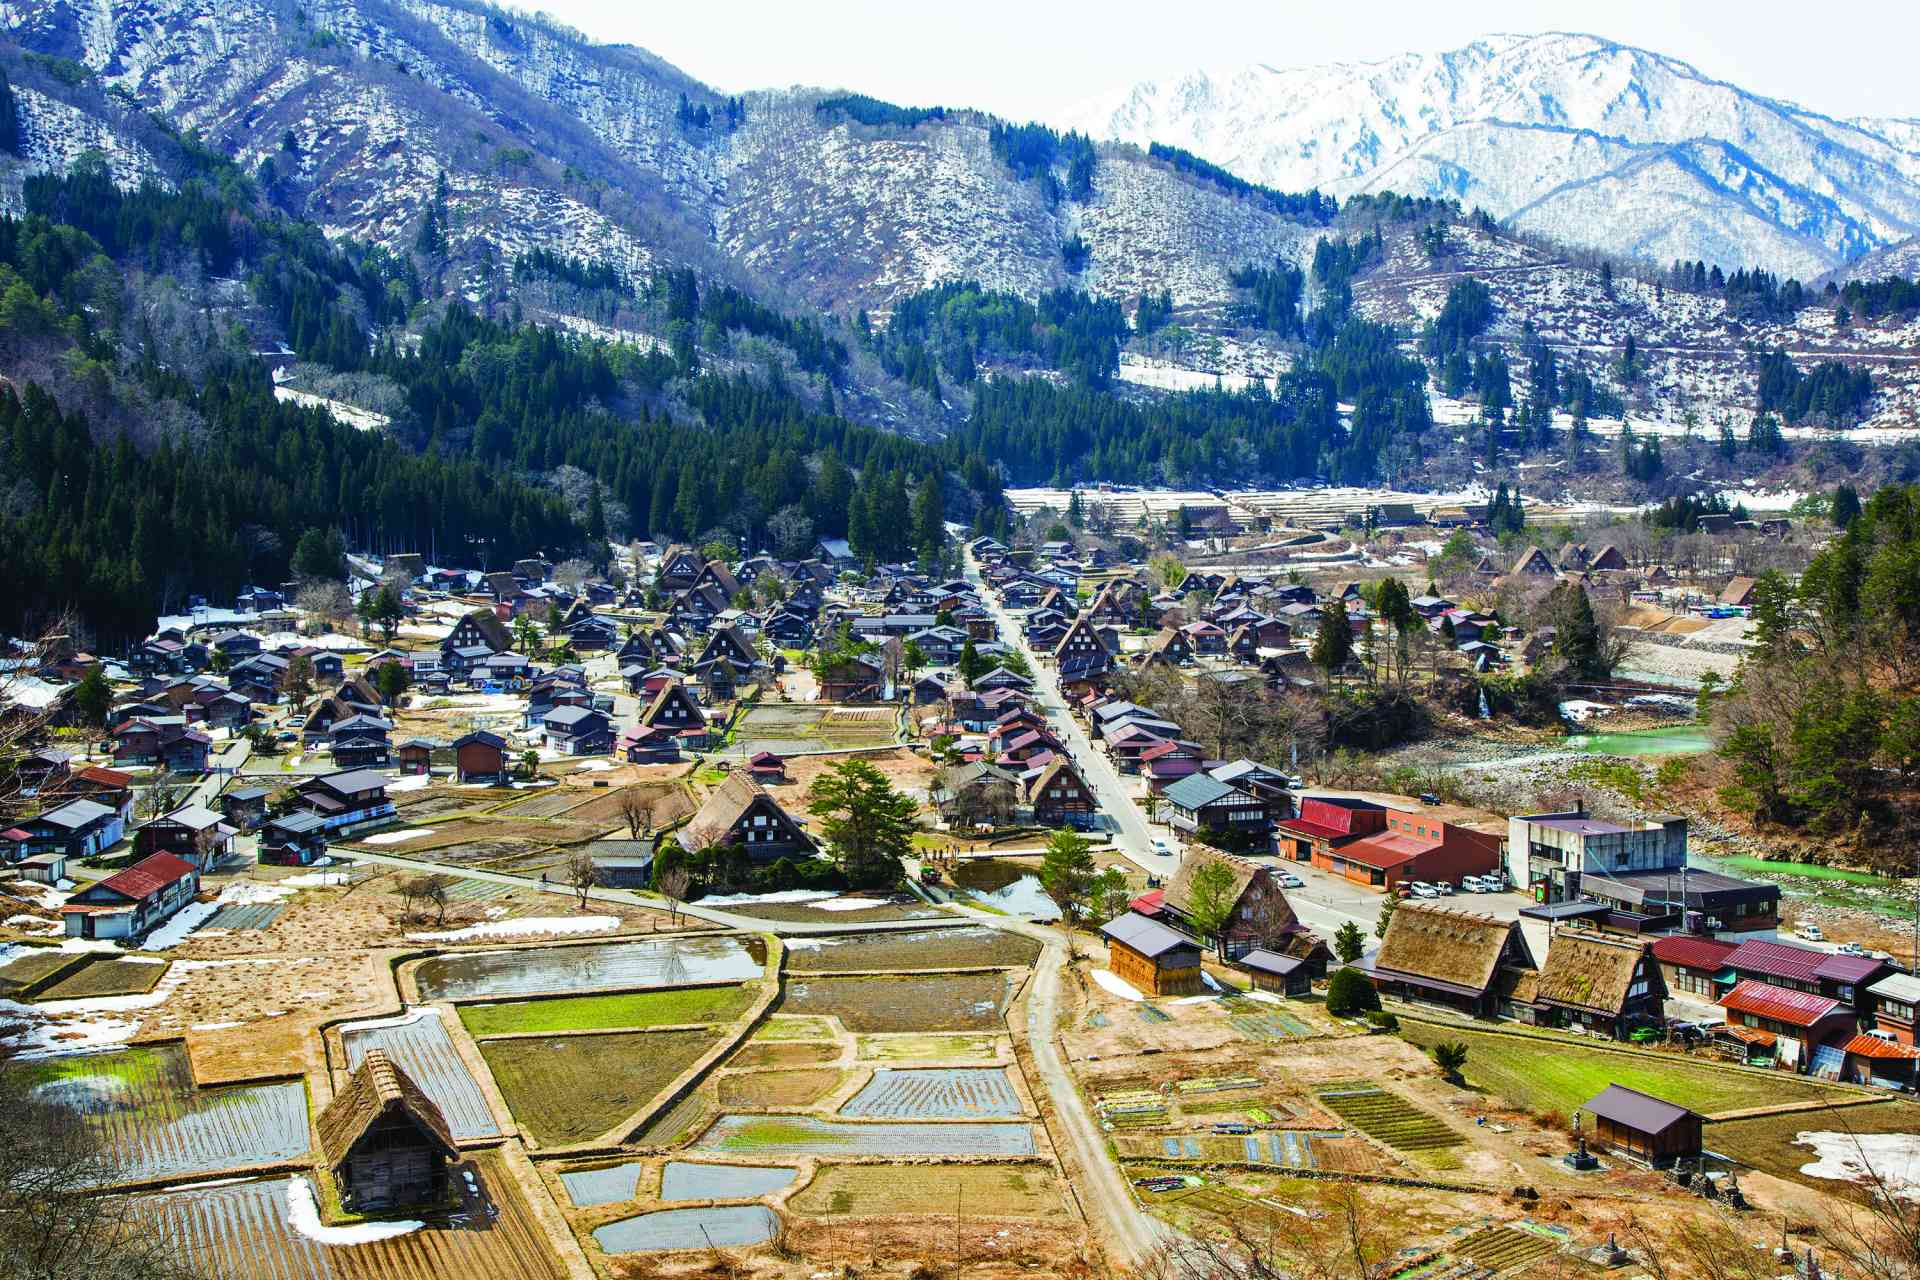 Shirakawago, Japan by Graham Meale